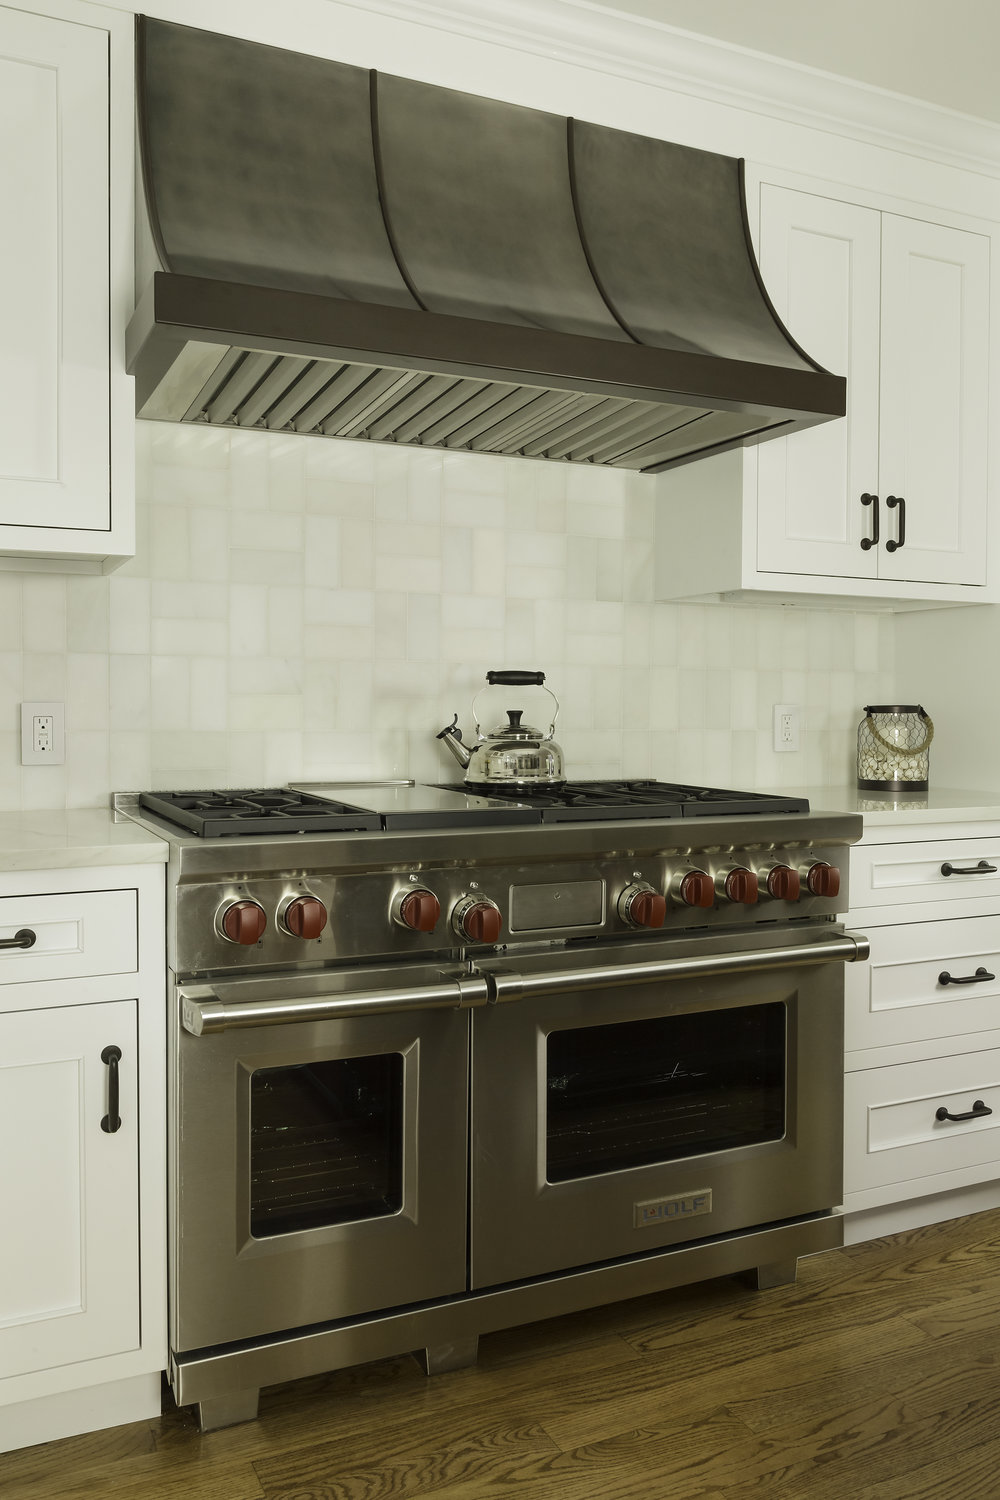 Contemporary style kitchen with stainless steel oven and range hood